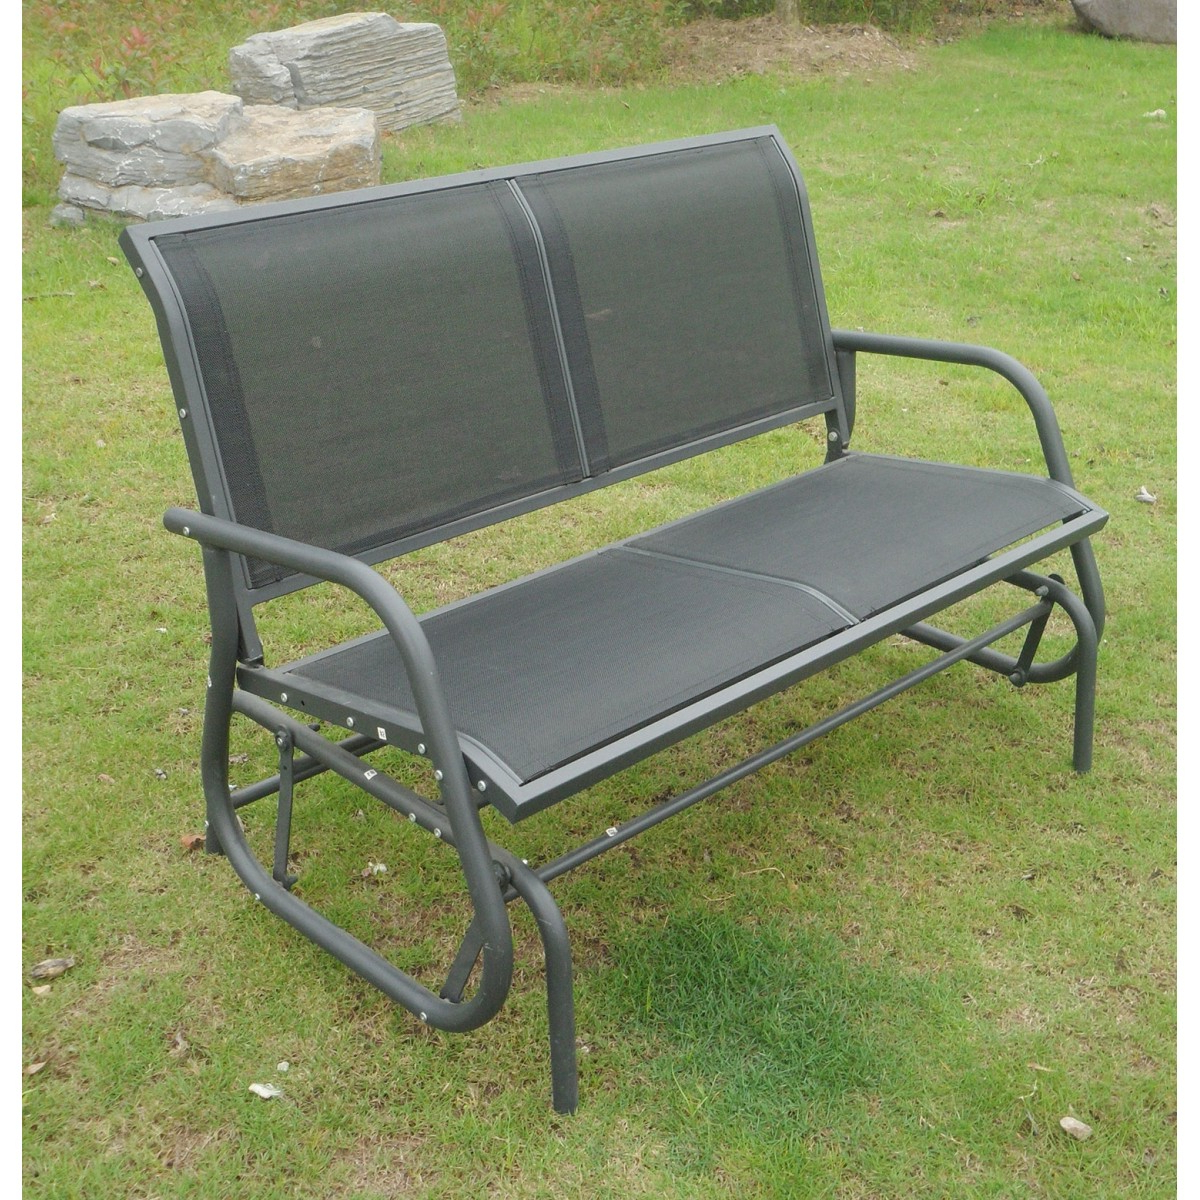 Popular Grey Garden Seat 2 Seater Glider Rocking Bench & Mesh Intended For Twin Seat Glider Benches (View 18 of 31)